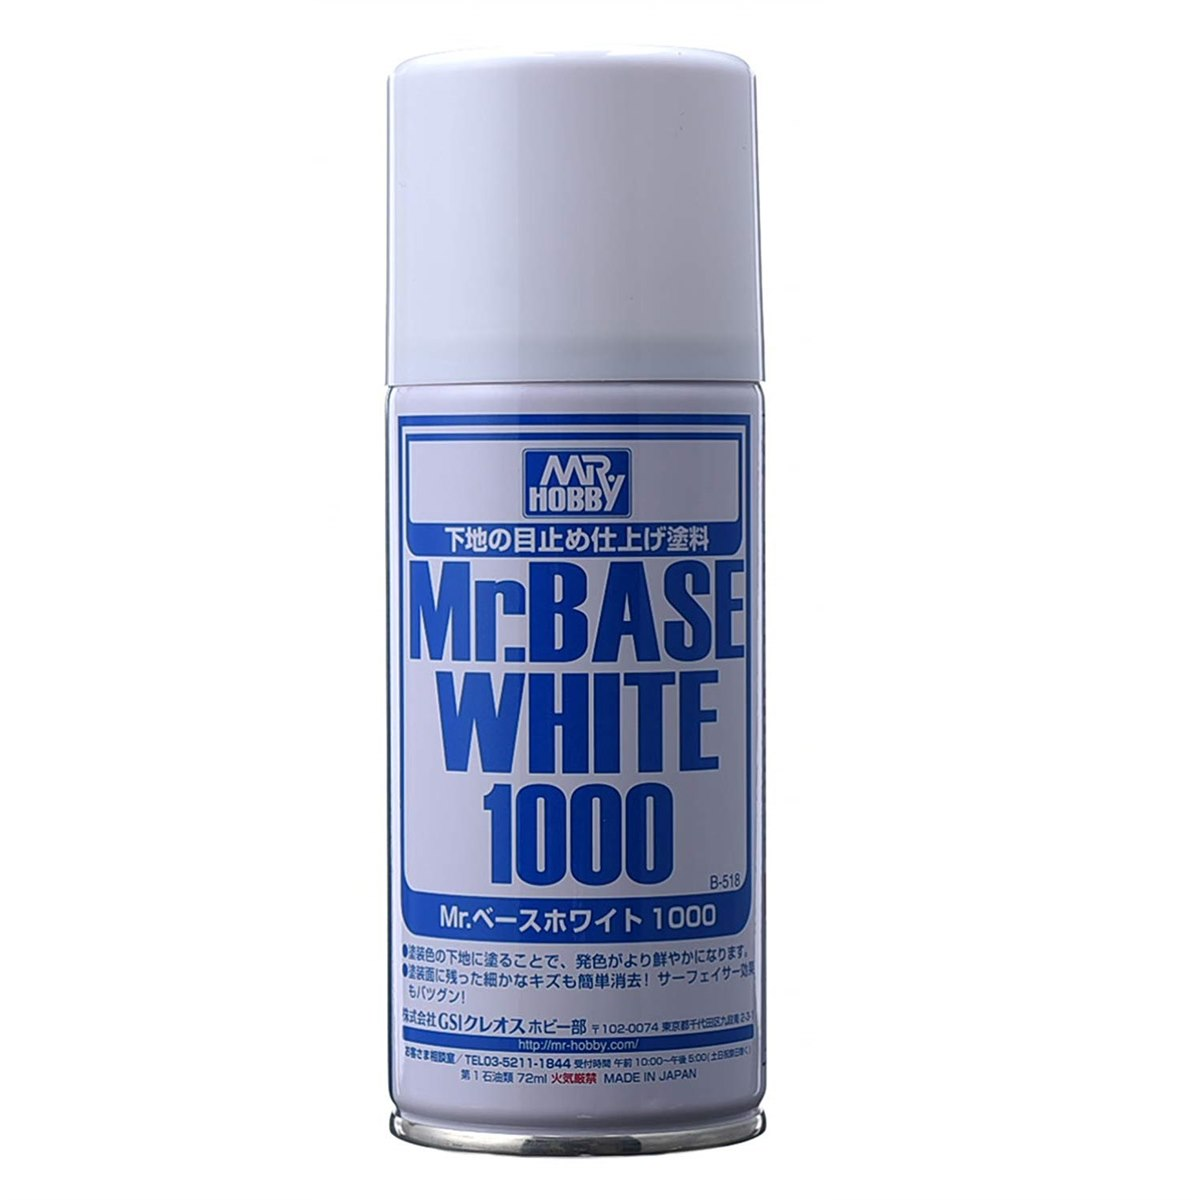 [B518] (MR HOBBY) Mr.BASE WHITE 1000 SPRAY (180ml)